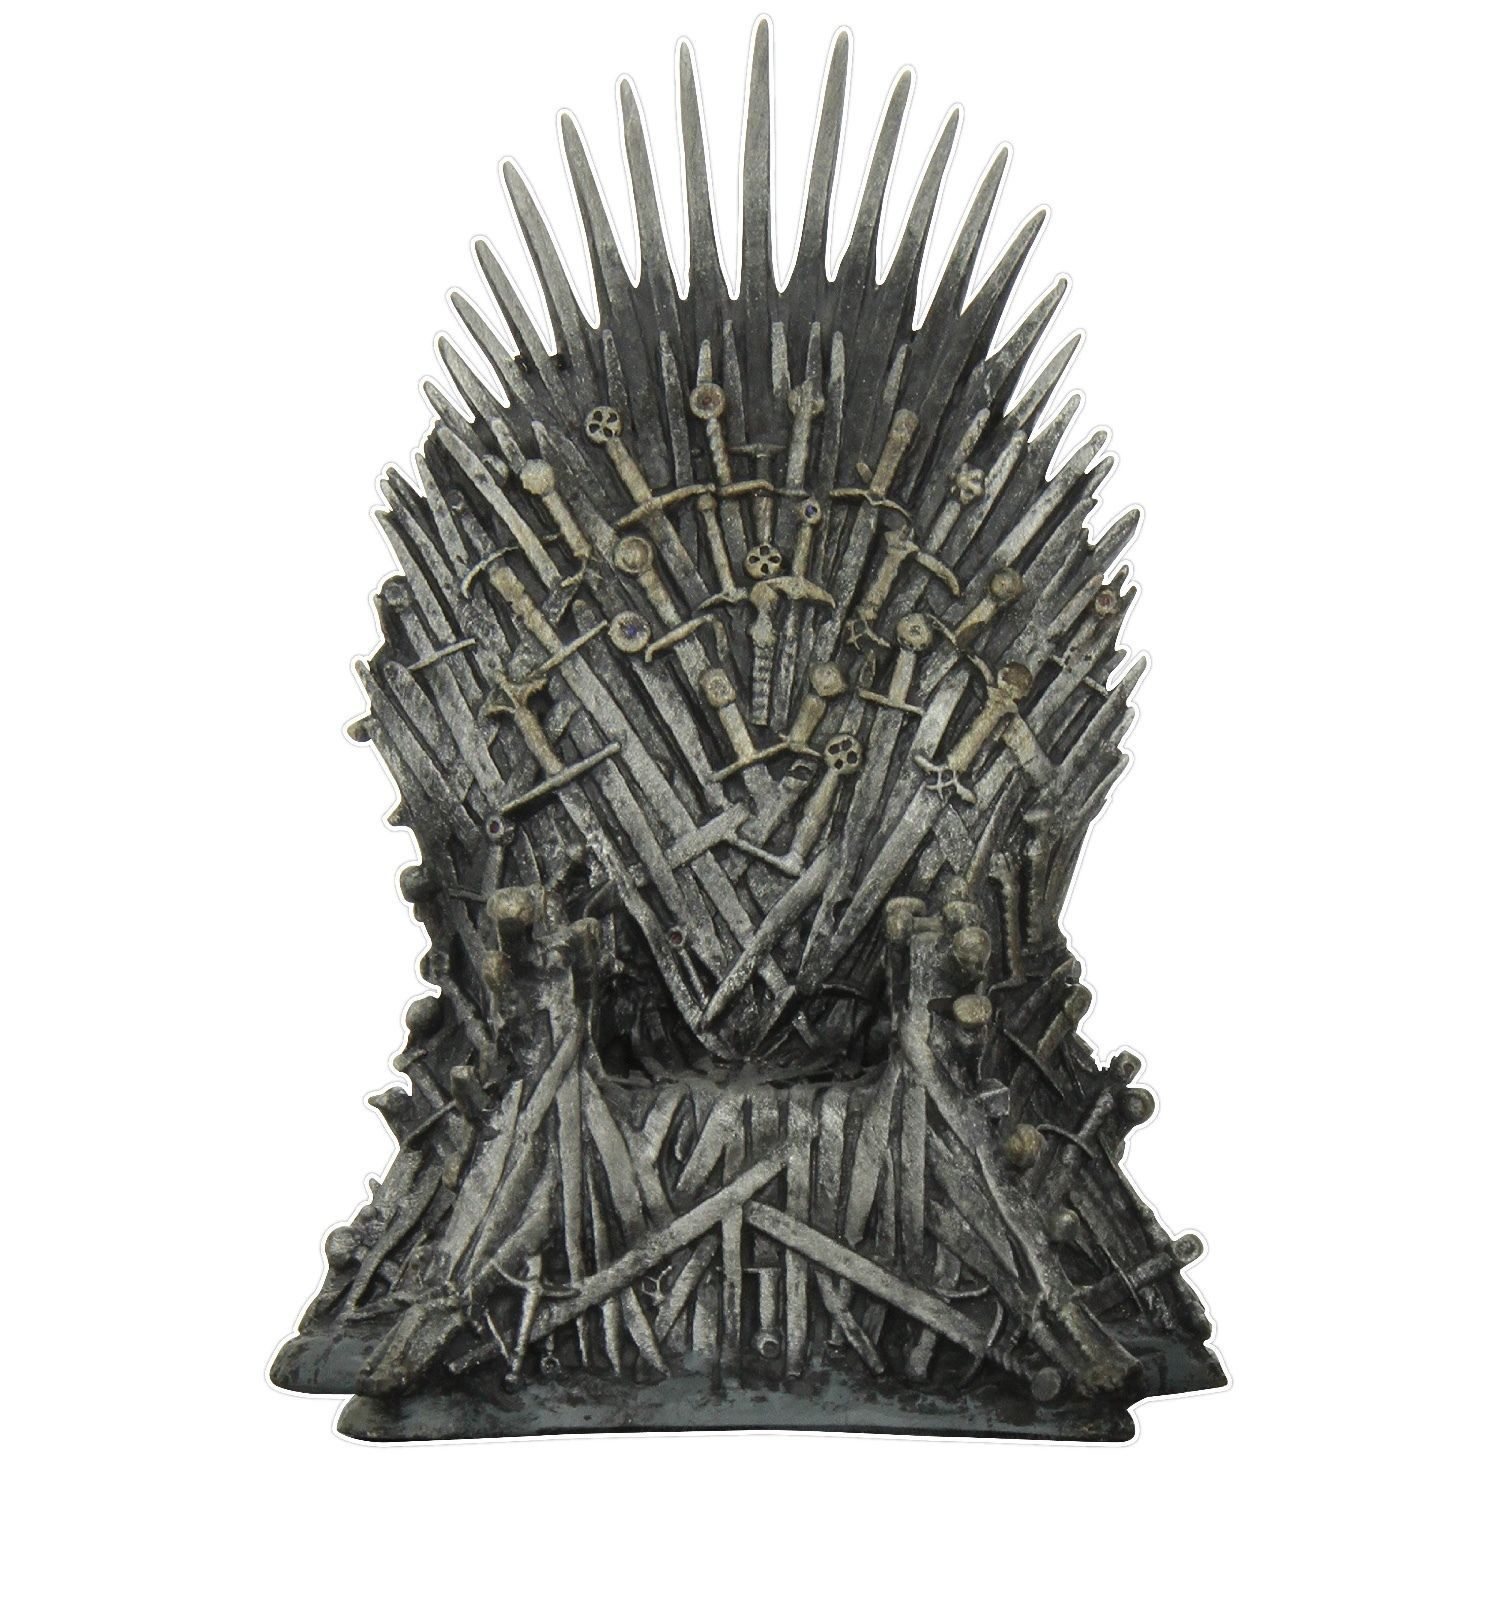 Game Of Thrones Vinyl Sticker Decal Sizes View More On The Link Http Www Zeppy Io Product Gb 2 32209364 Game Of Thrones Chair Throne Chair Iron Throne